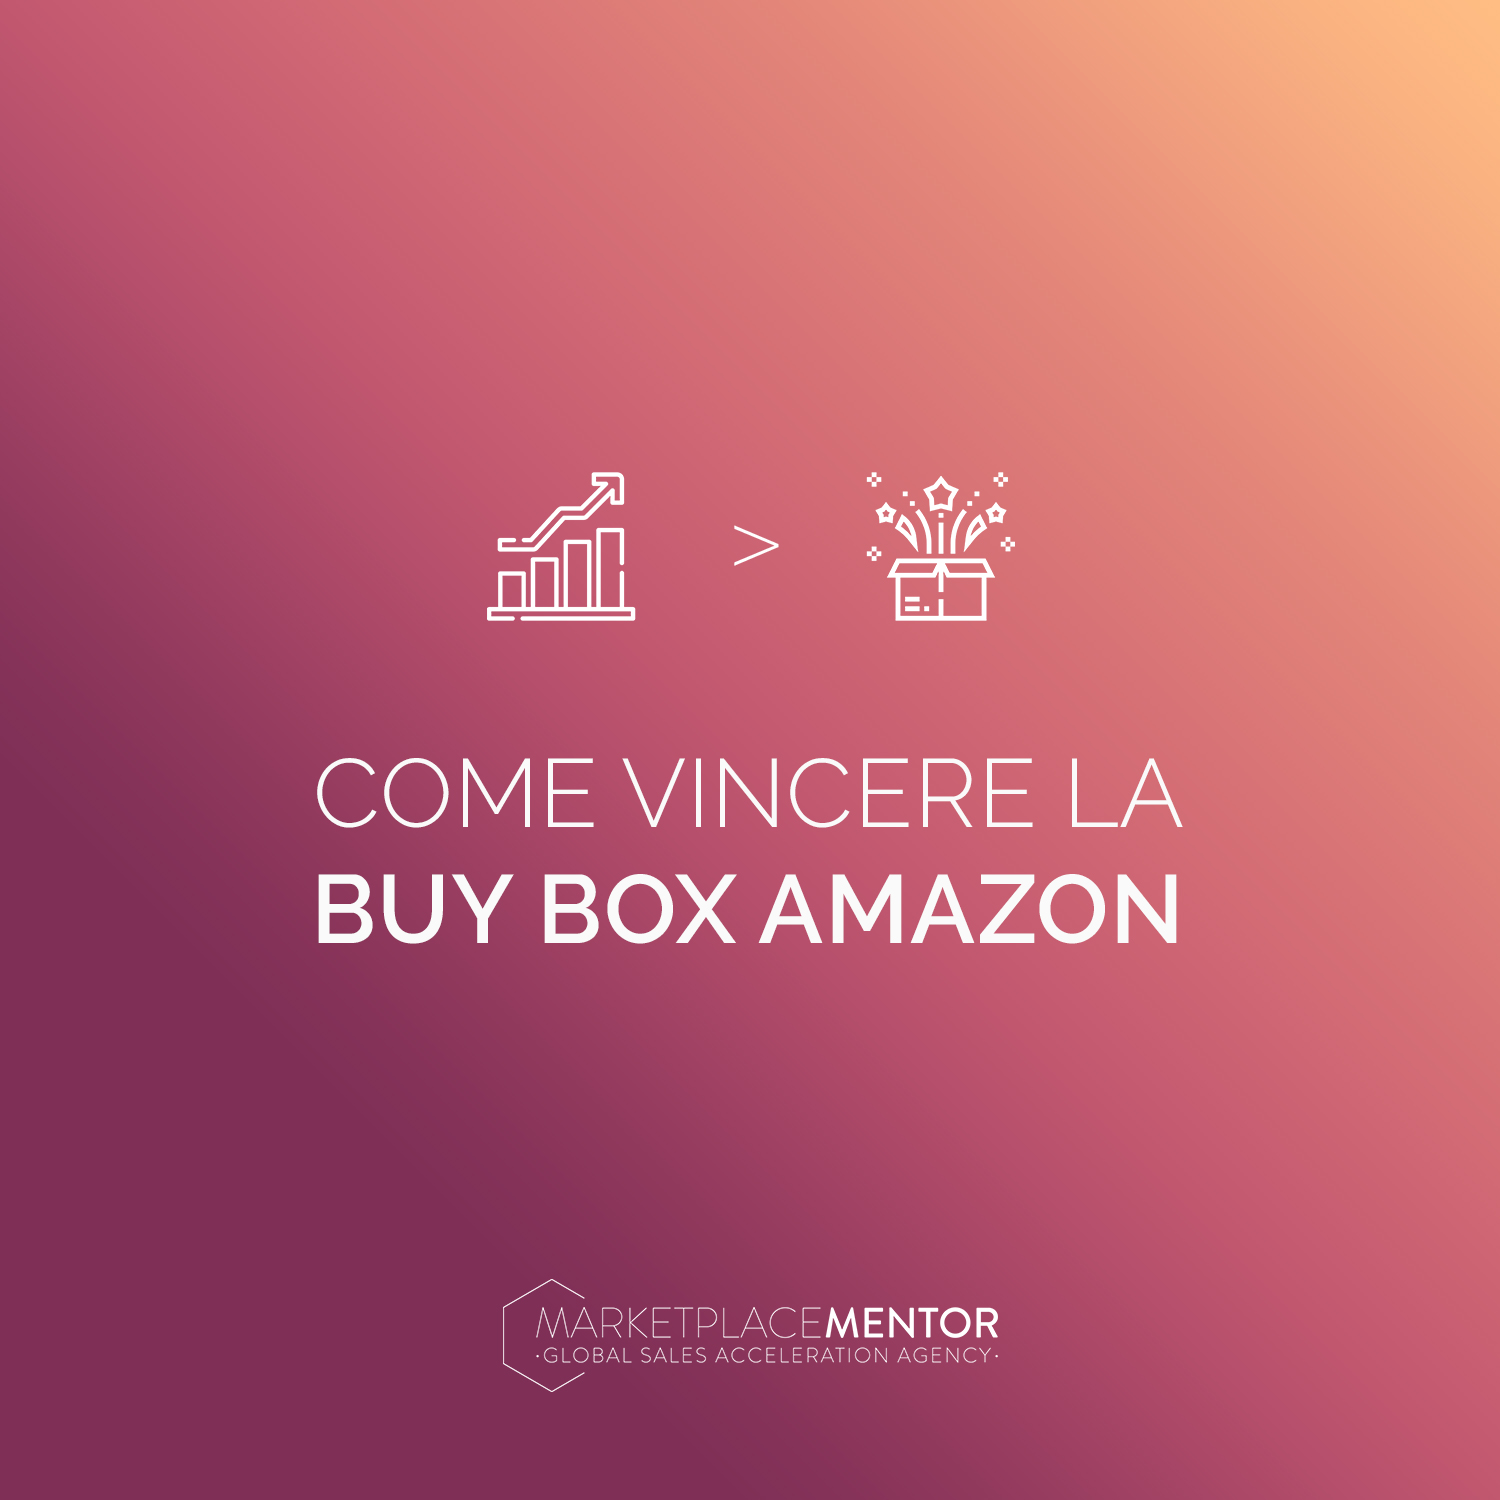 Come vincere la Buy Box Amazon